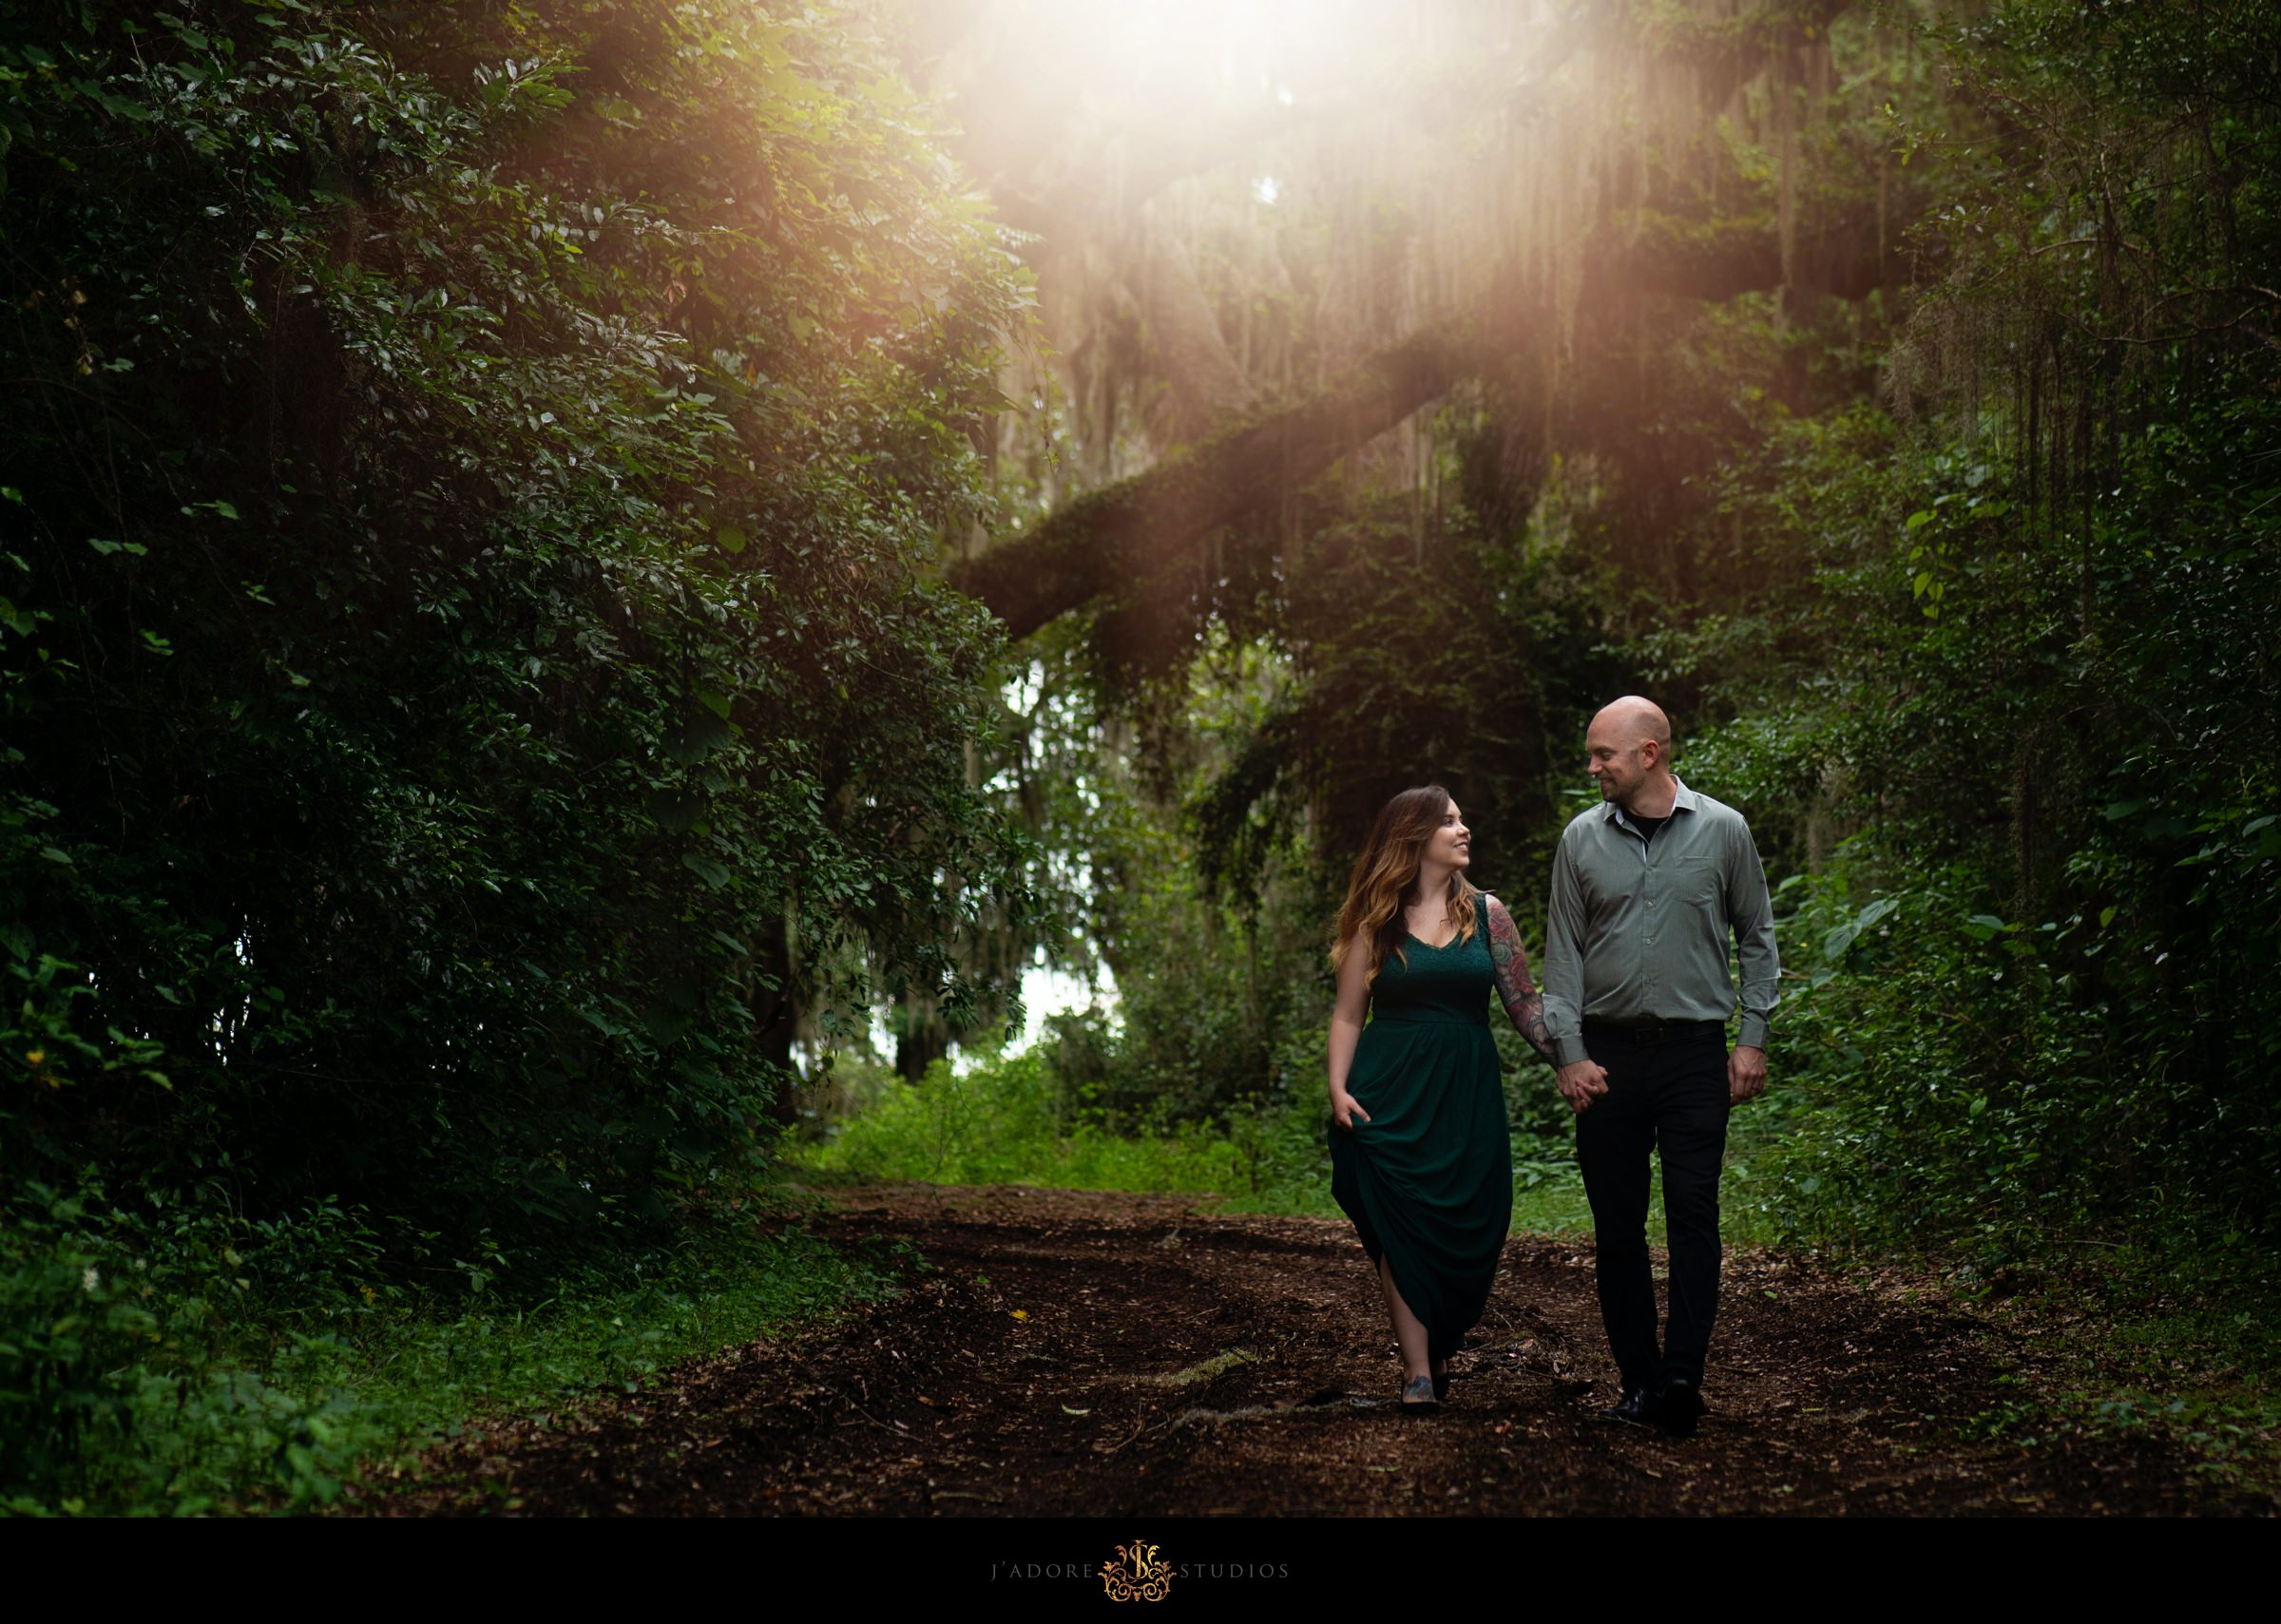 Couple walking in a park with rays of sunshine